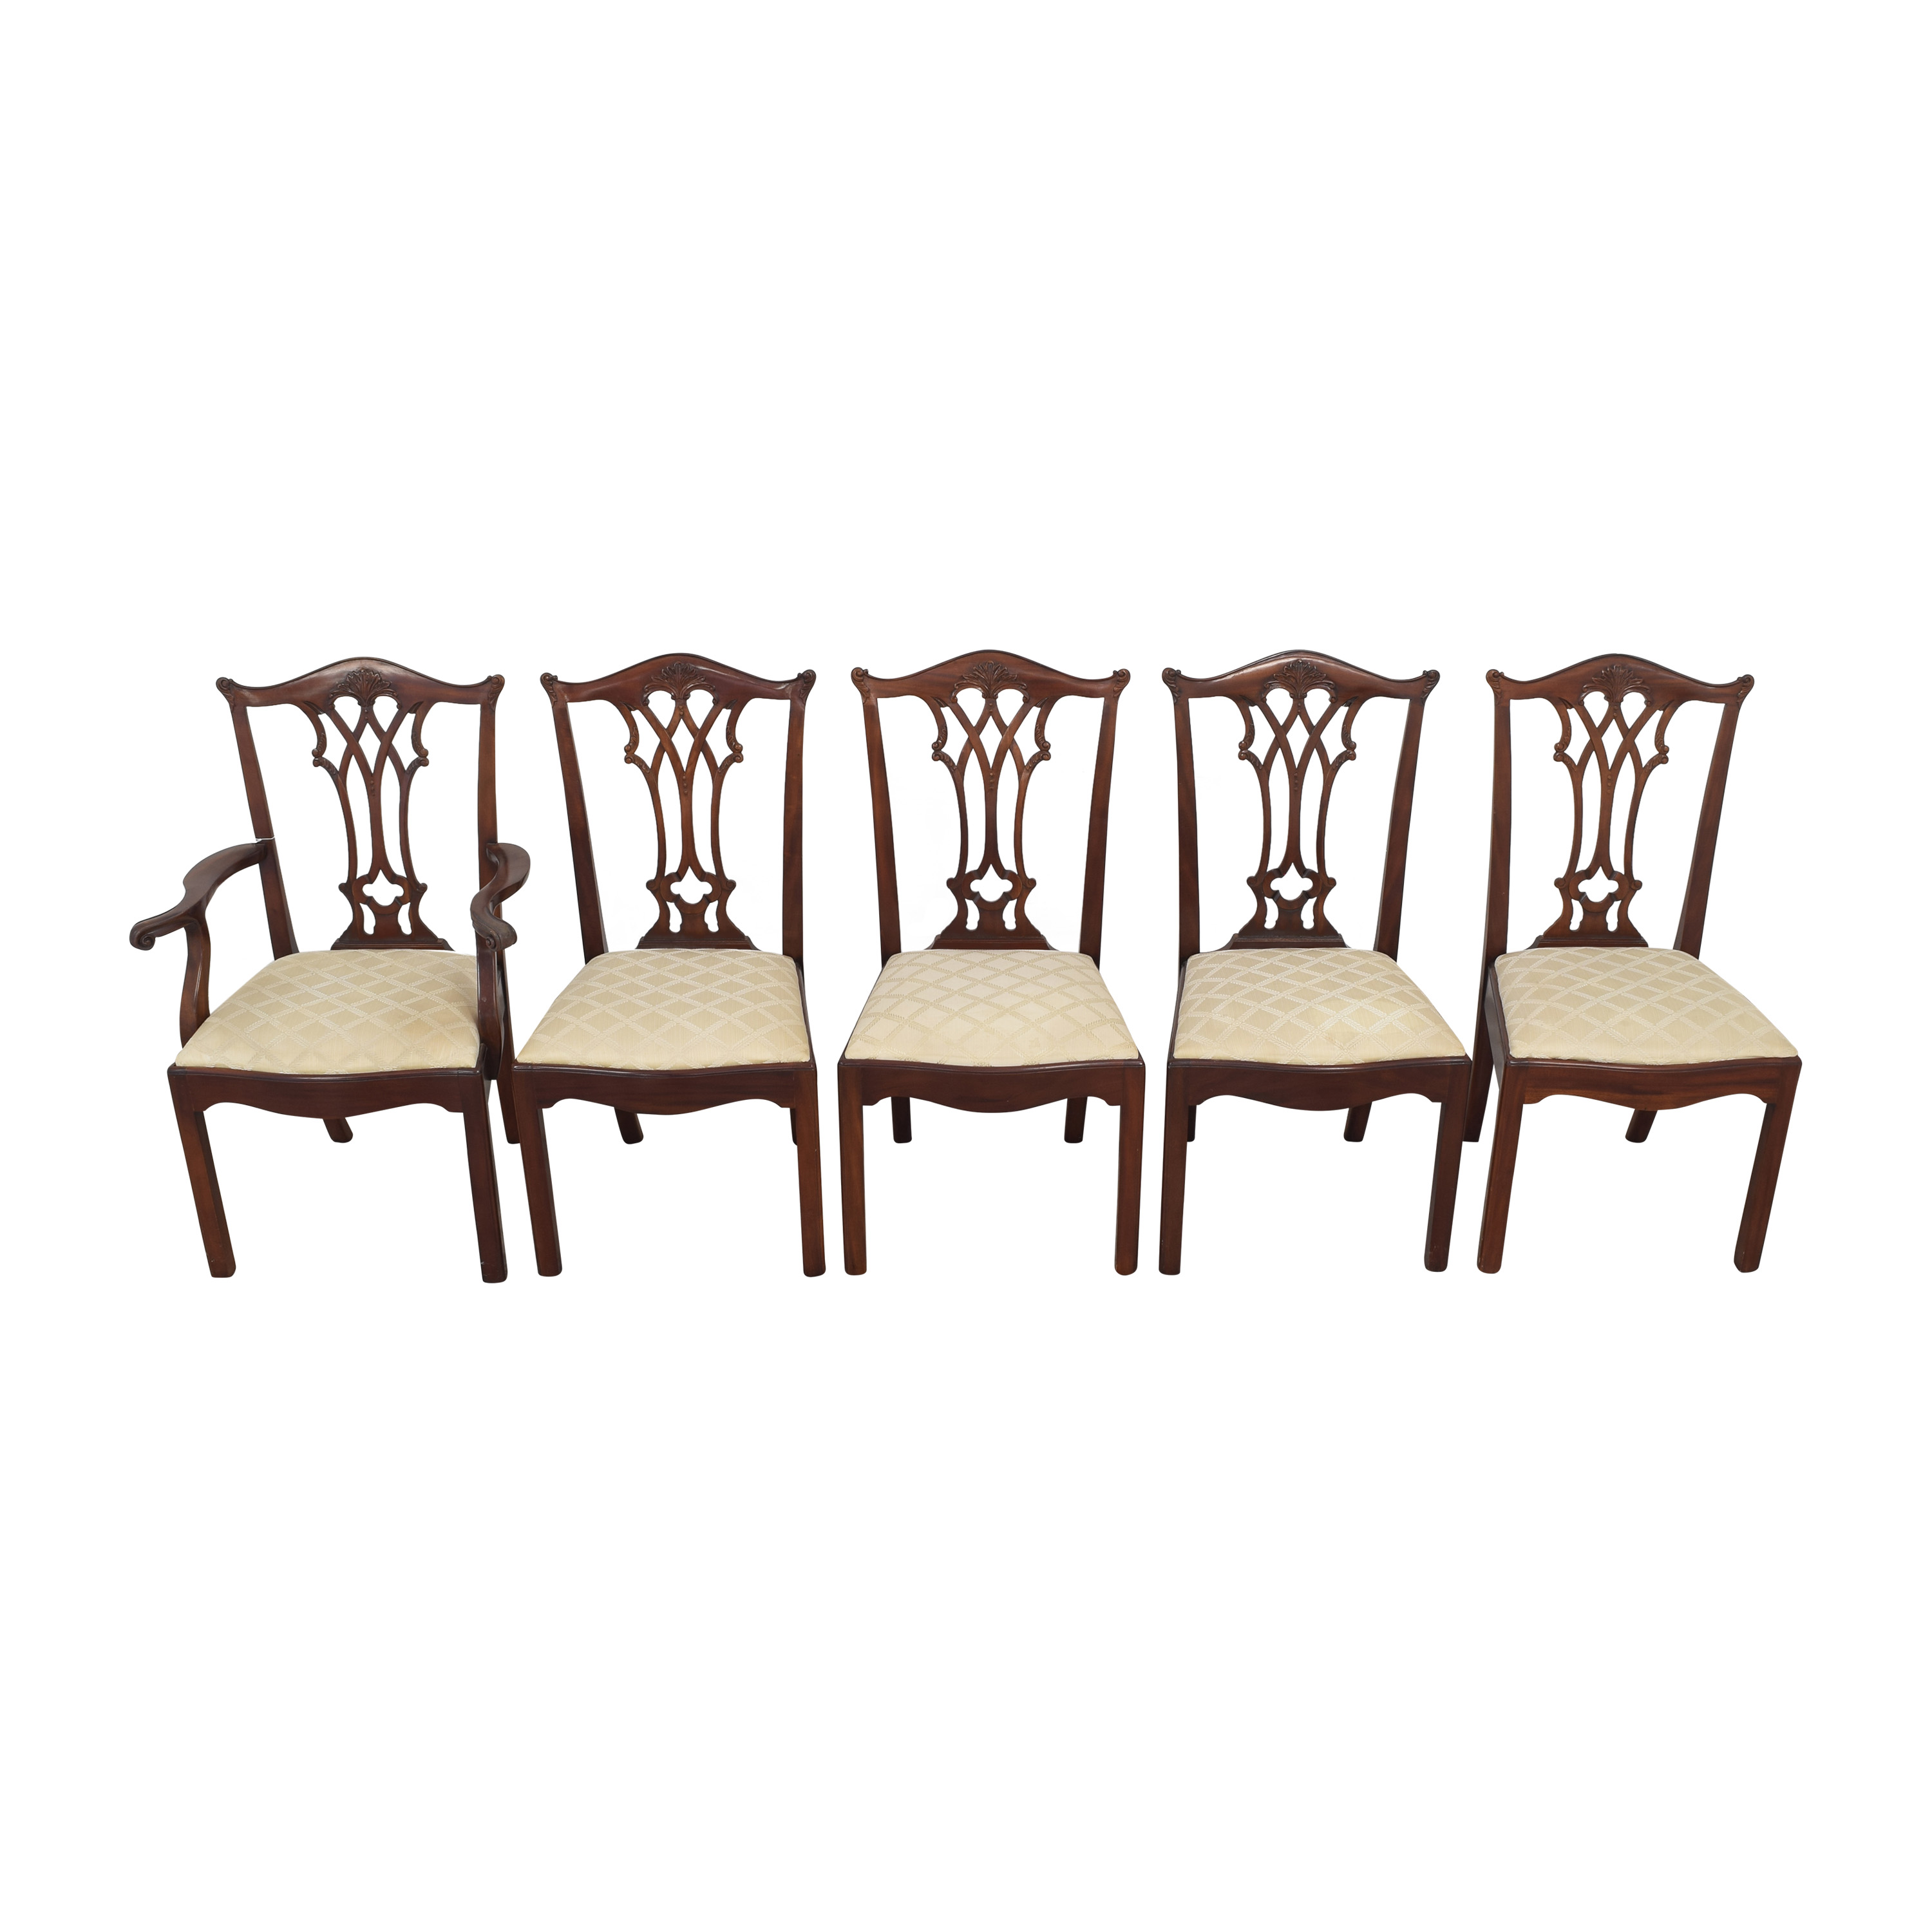 Maitland-Smith Maitland-Smith Connecticut Dining Chairs used